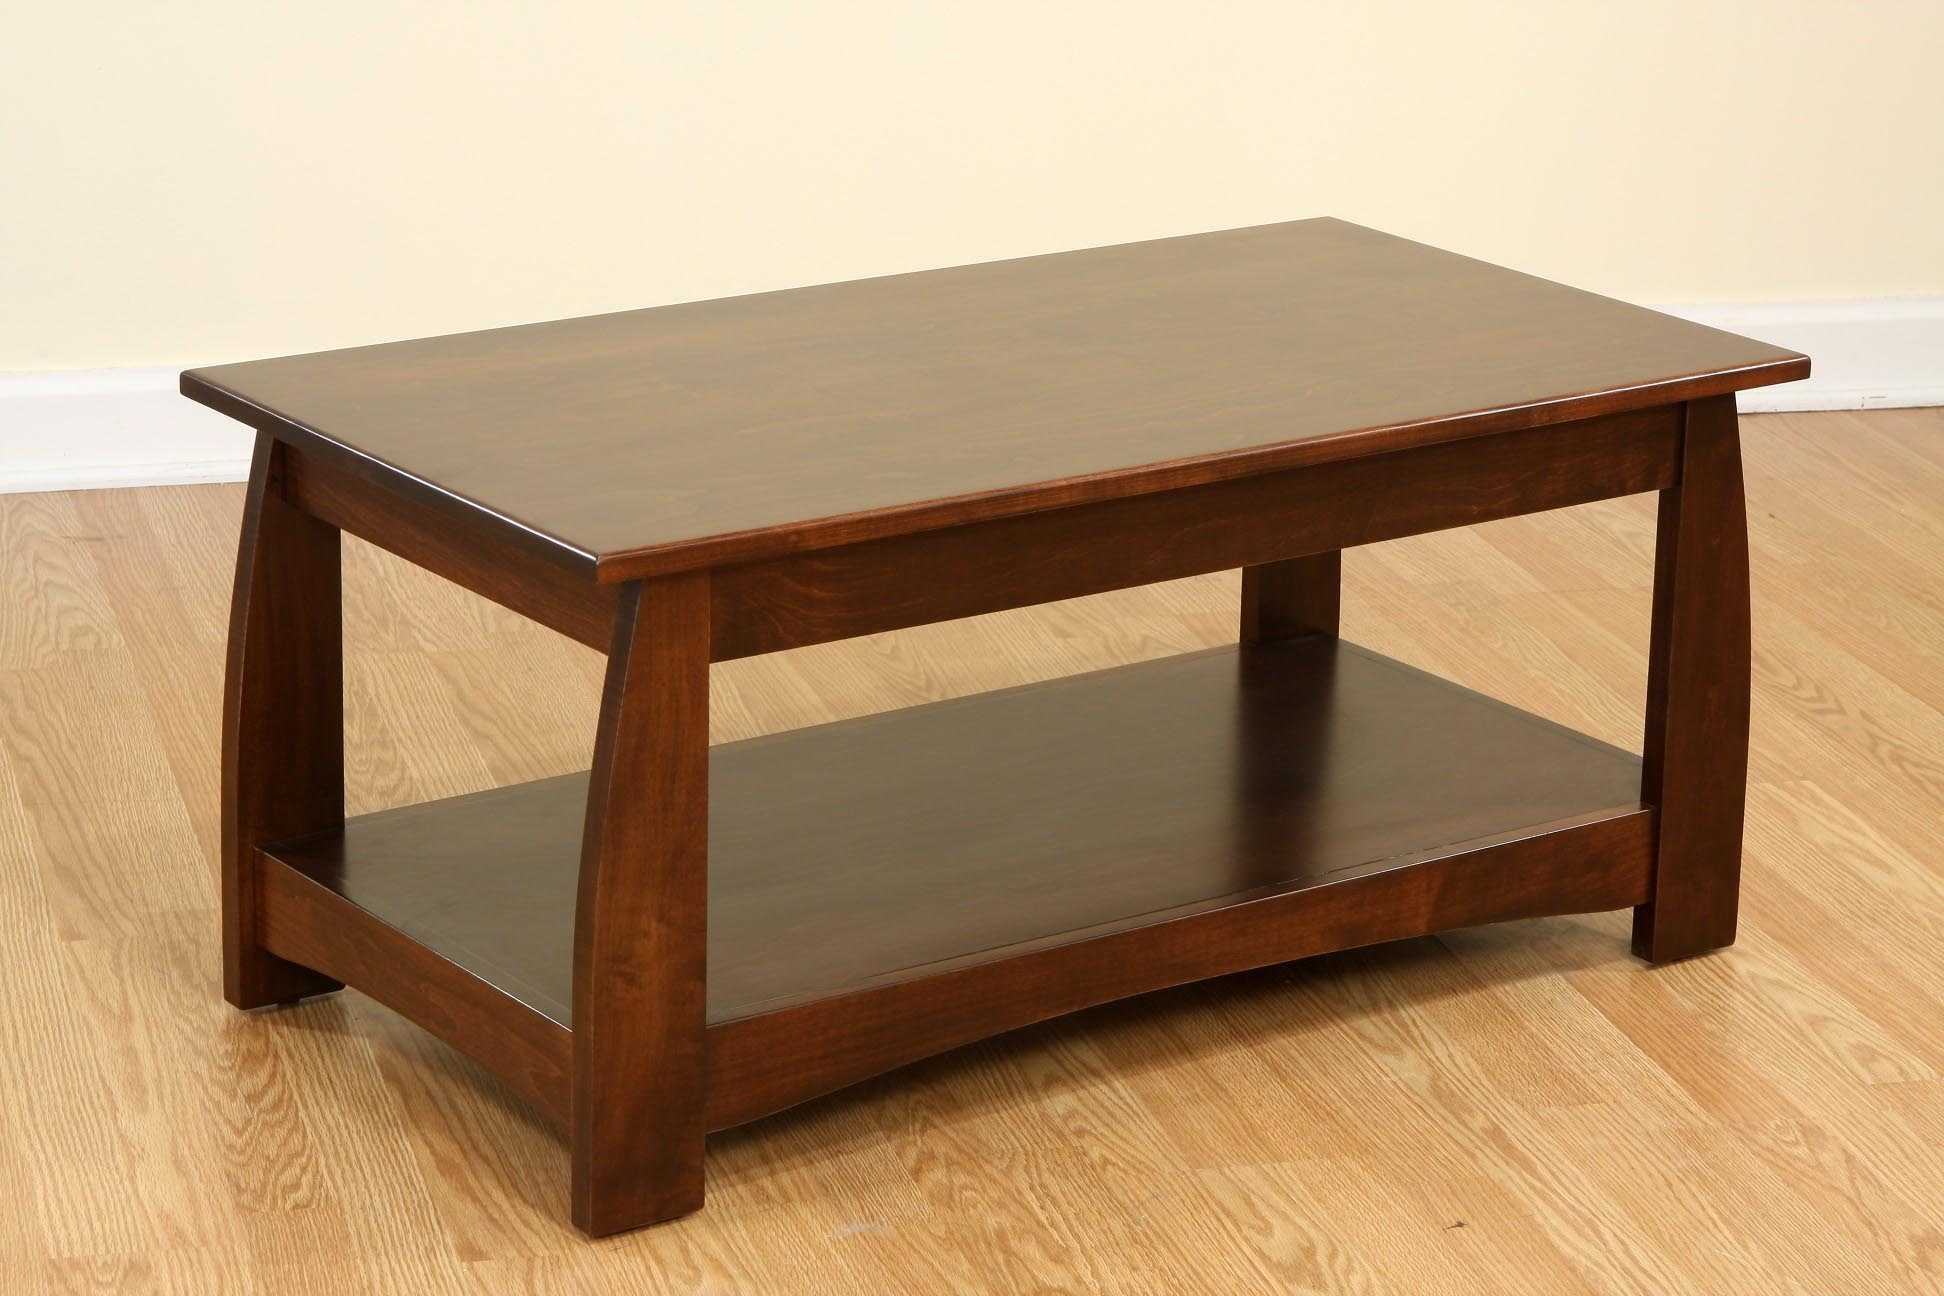 Simple Coffee Table Designs Coffee Table Woodworking Plans Simple